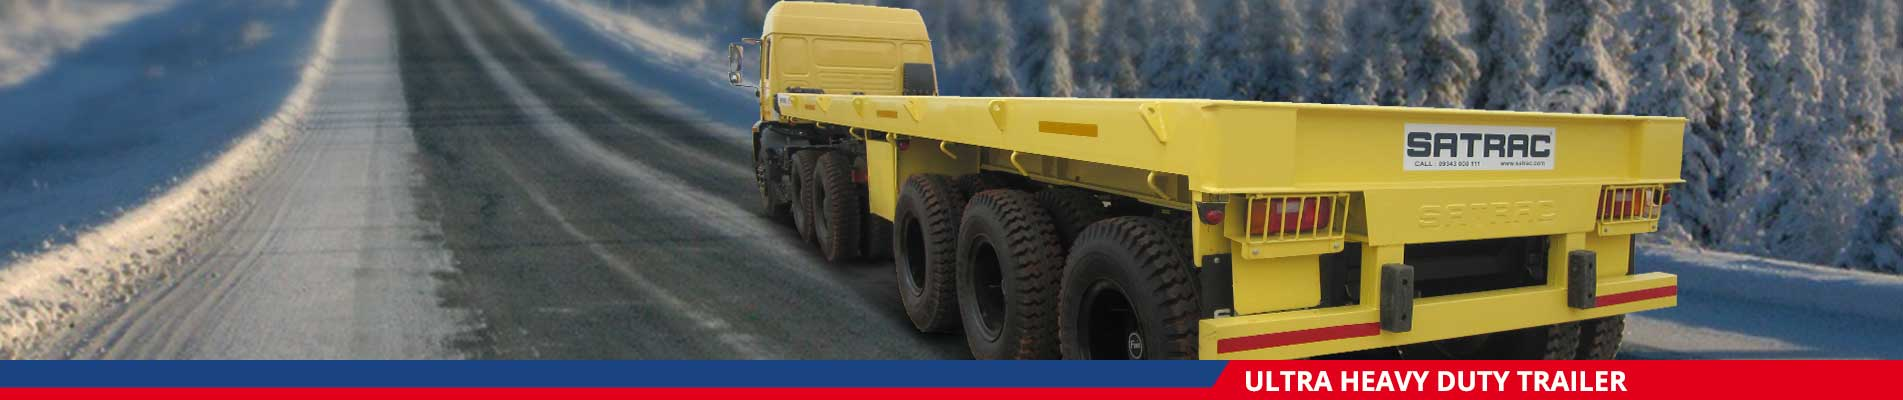 Ultra Heavy Duty Trailer Manufacturers in India